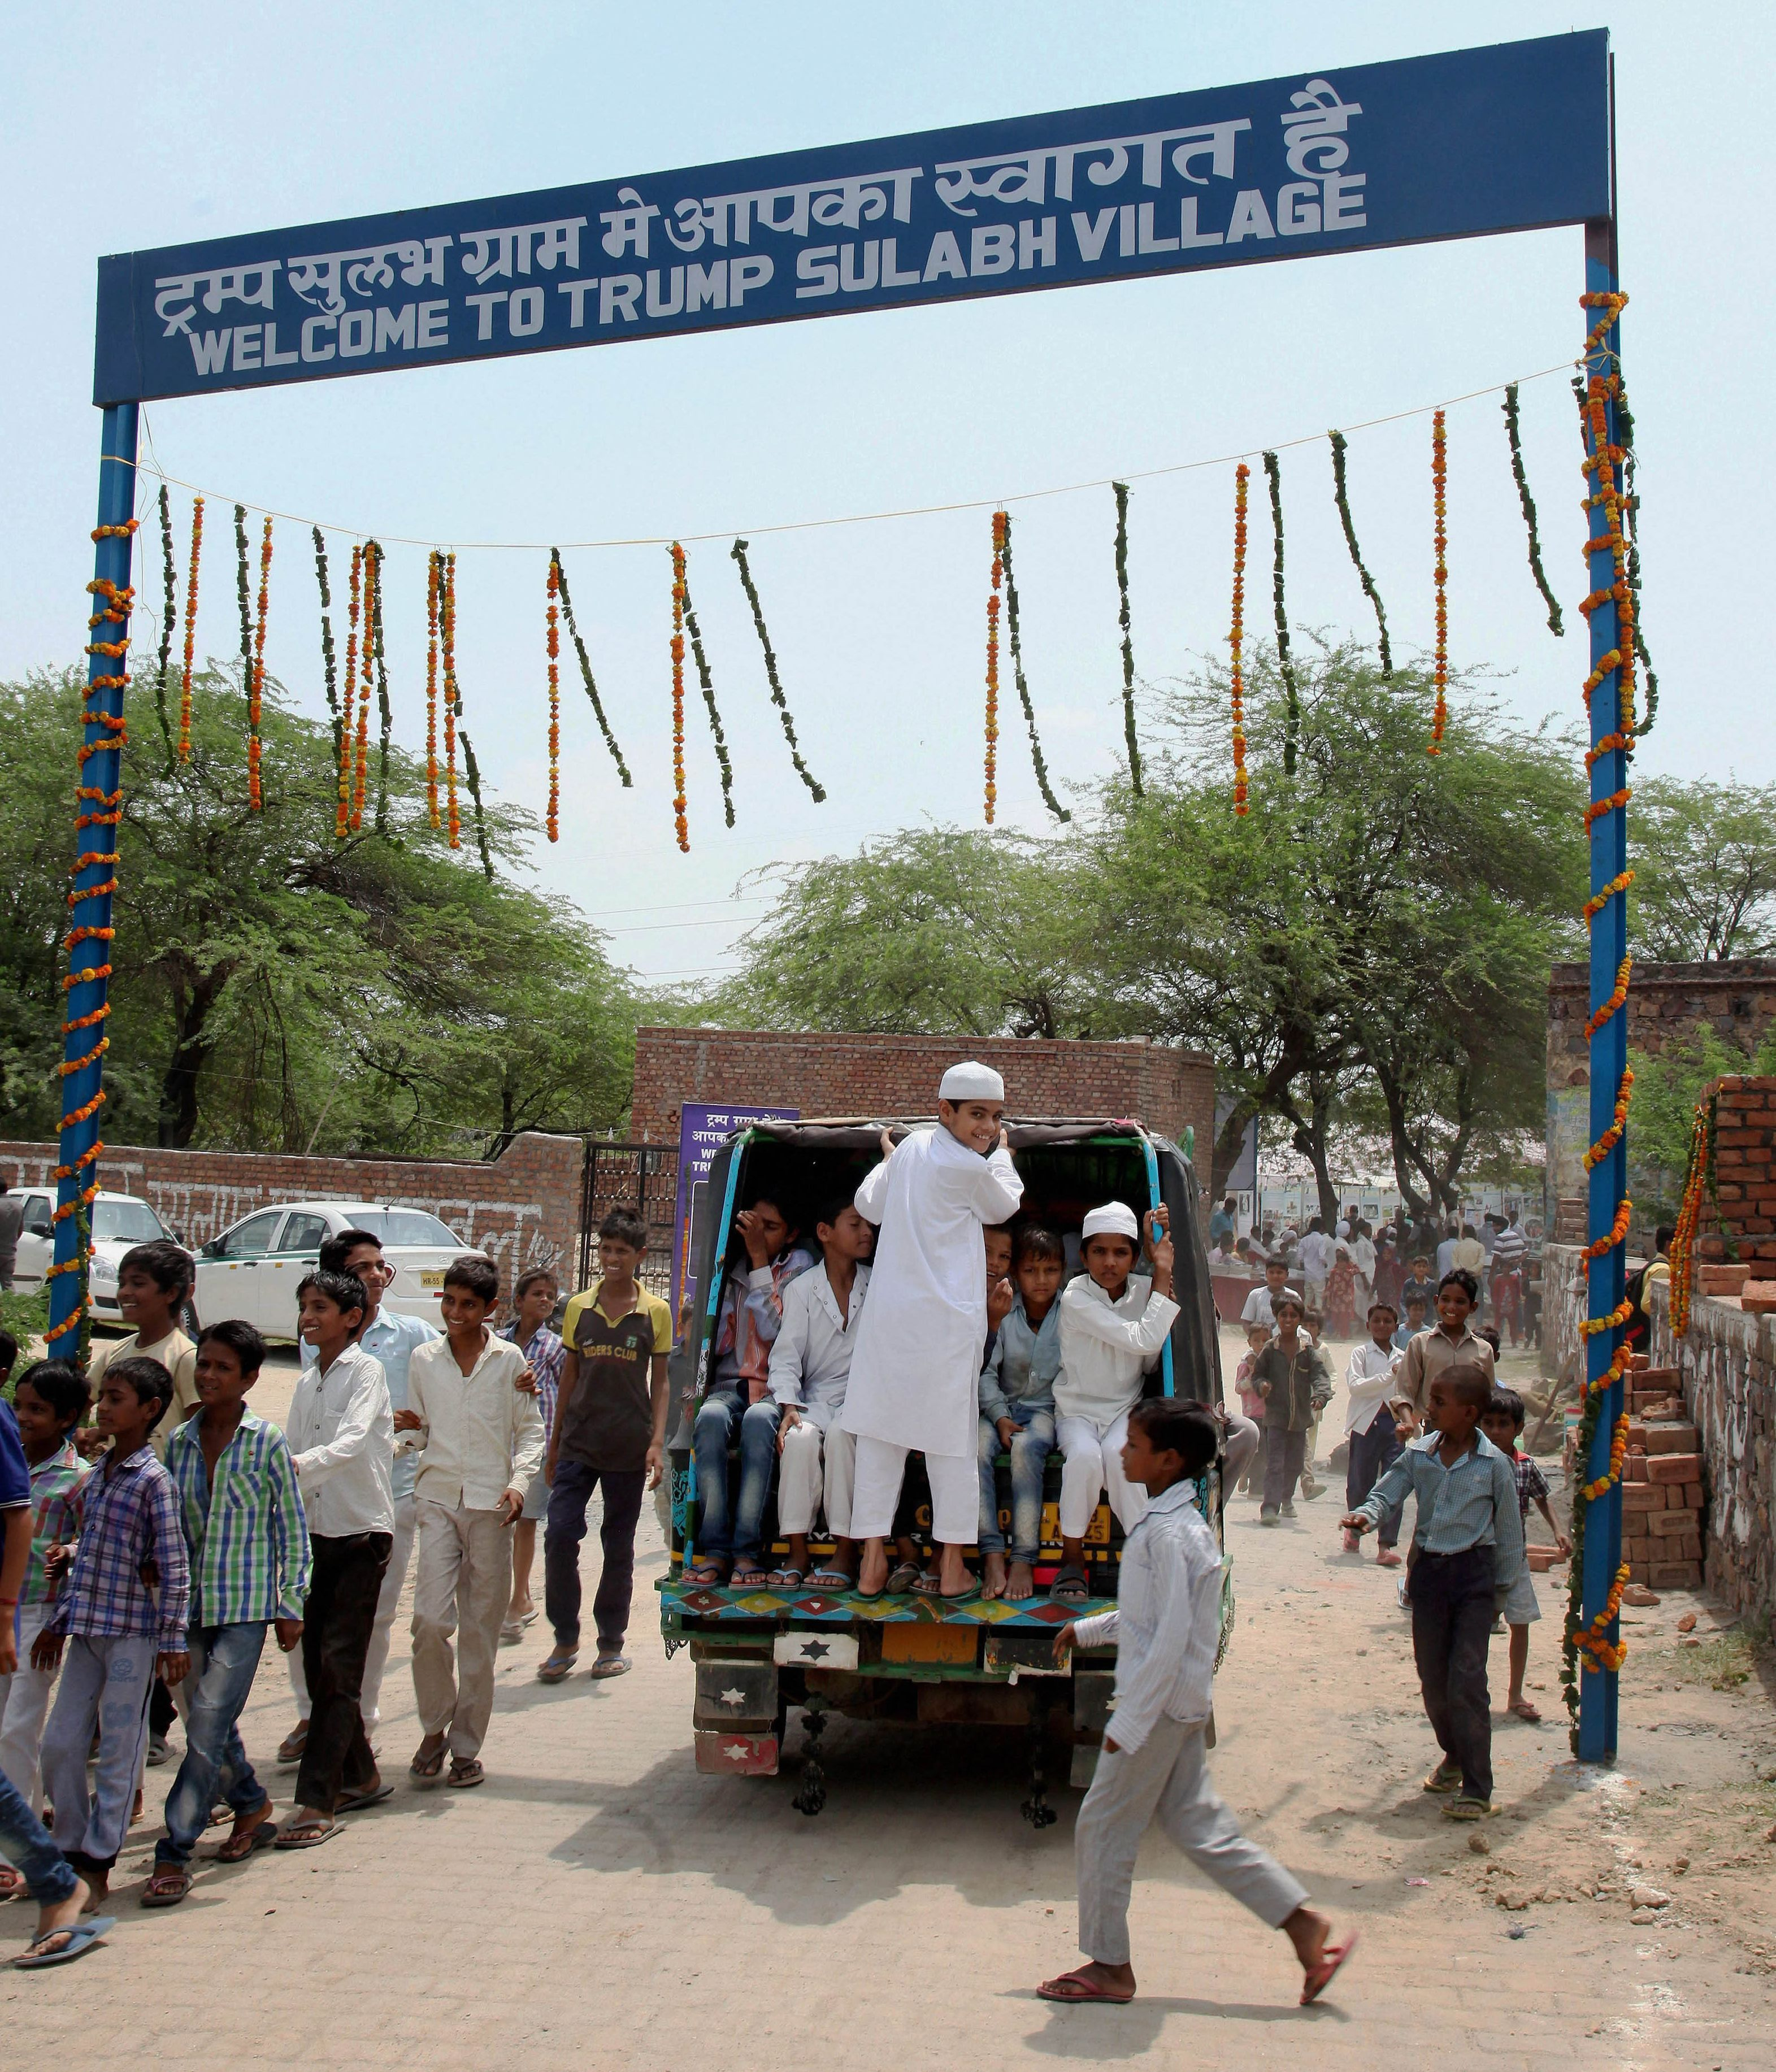 Village dedicated to Donald Trump in Haryana